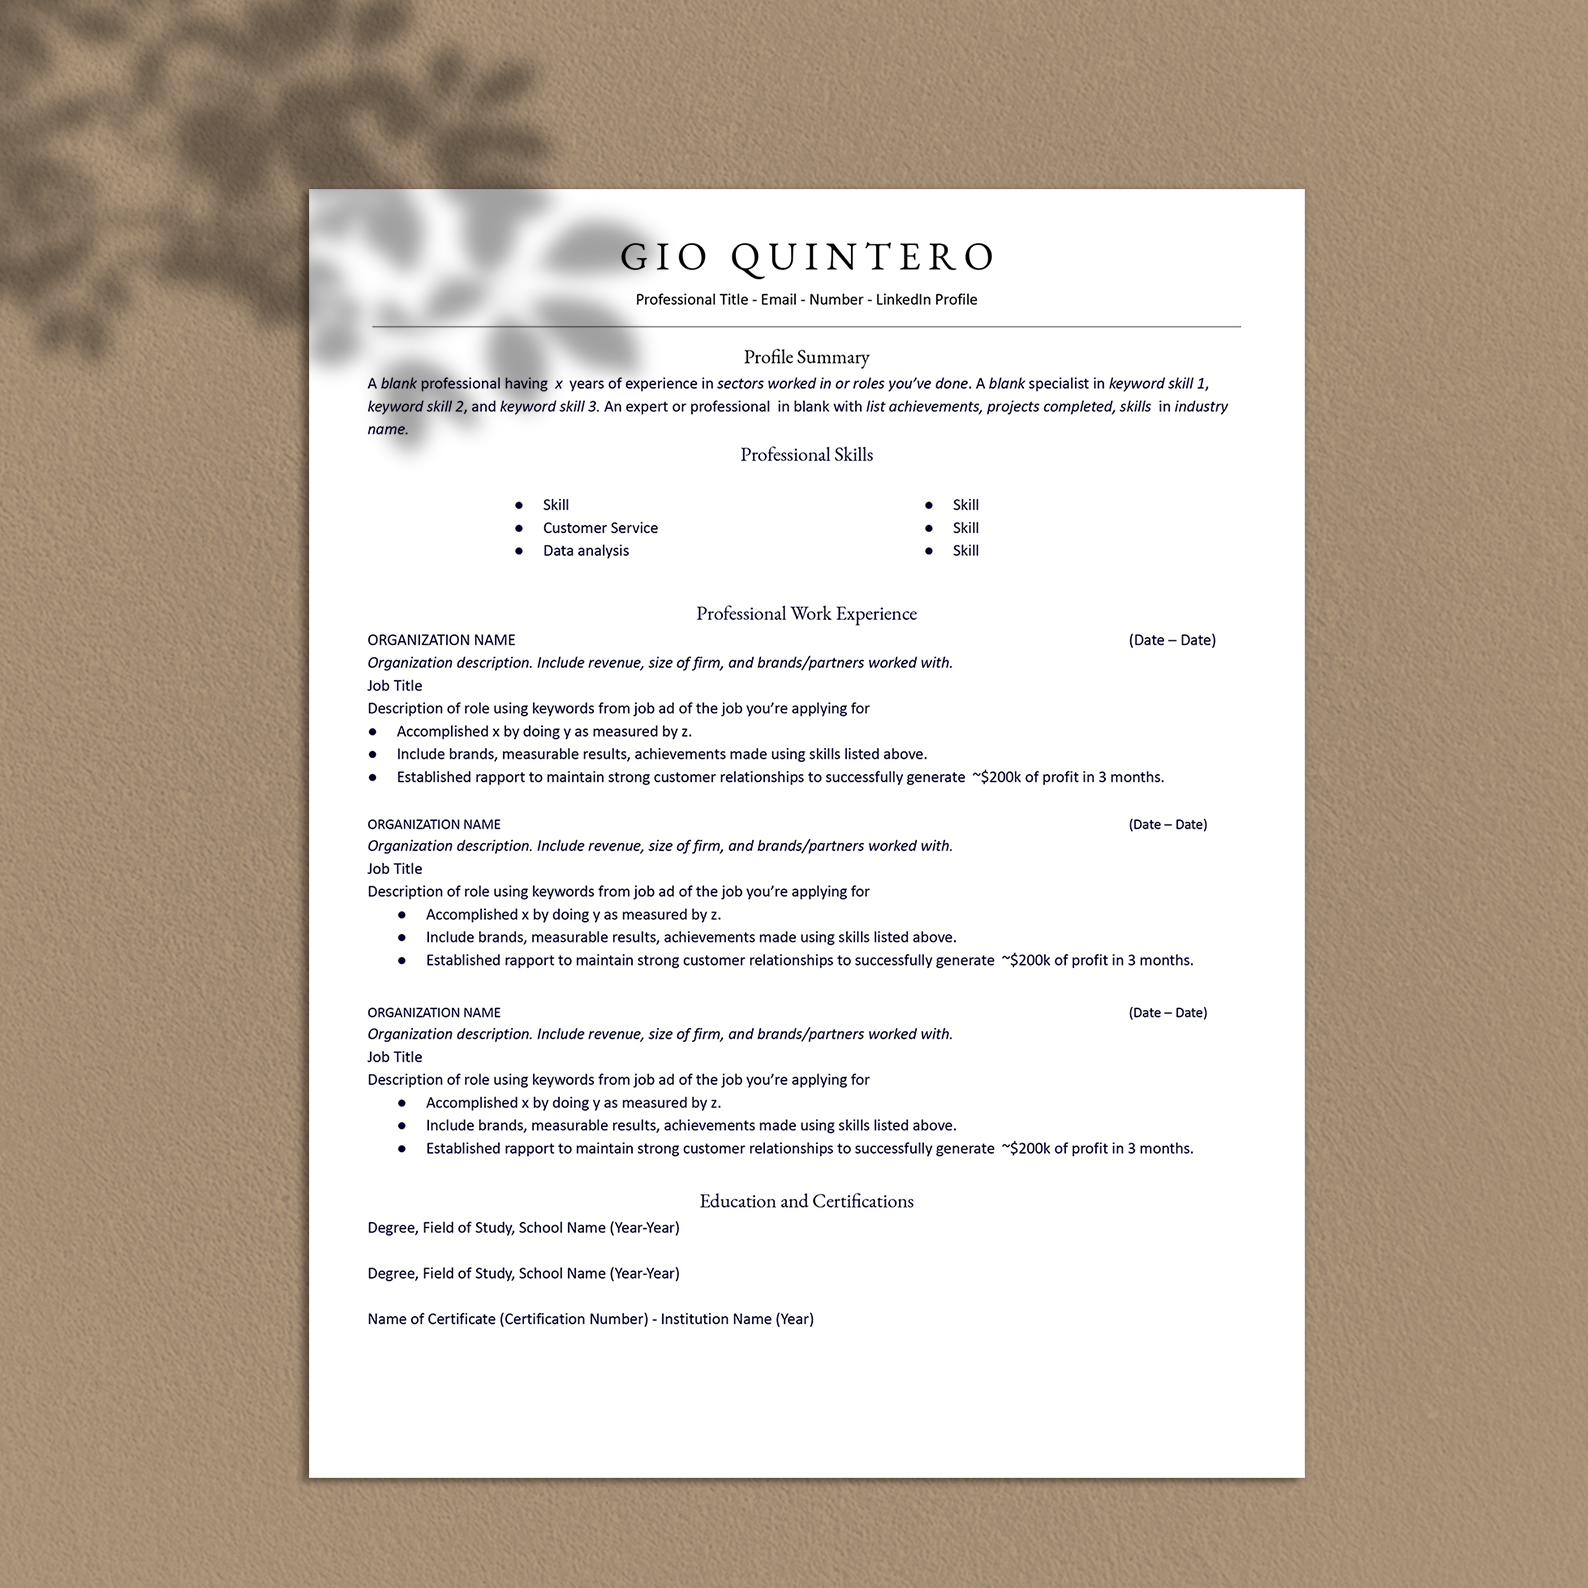 All you need to do is scroll down until you see the section with resume templates: Ats Compliant Resume Google Docs Resume Templates Gio Quintero Upmarket Templates